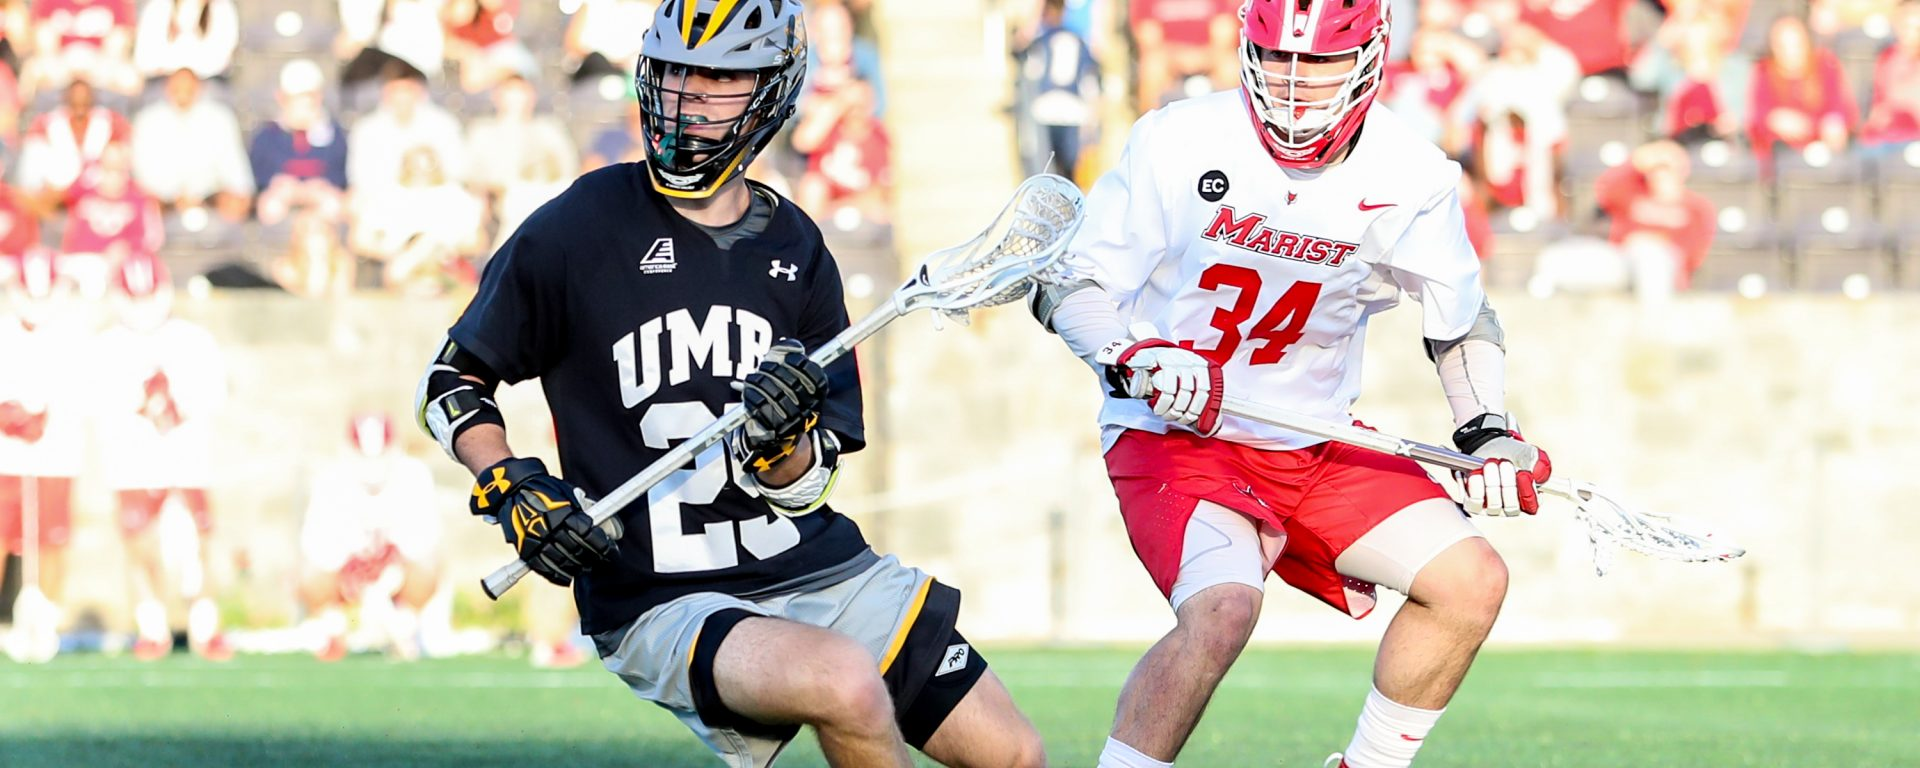 UMBC lacrosse player in black, gold and gray uniform and Marist lacrosse player in red and white uniform, on the field.